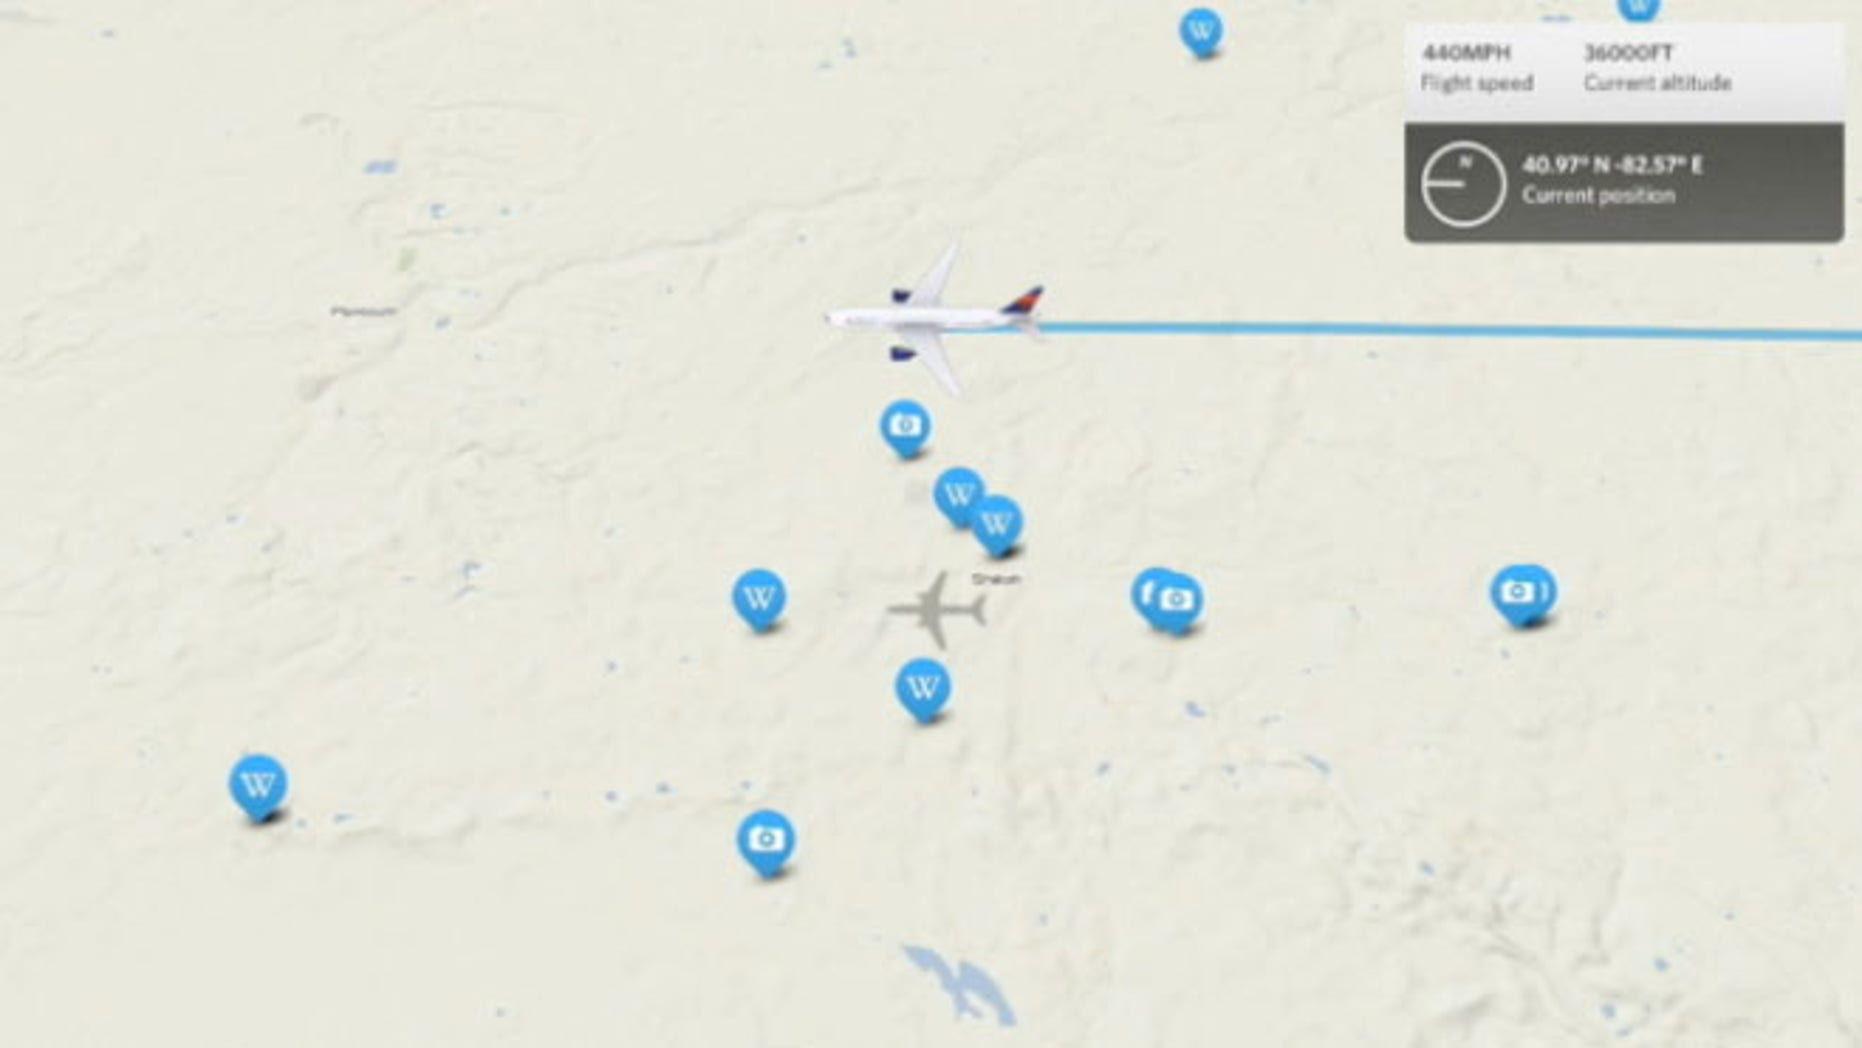 Delta Airlines has released a new app for the iPad that allows you to see where you are in your journey.